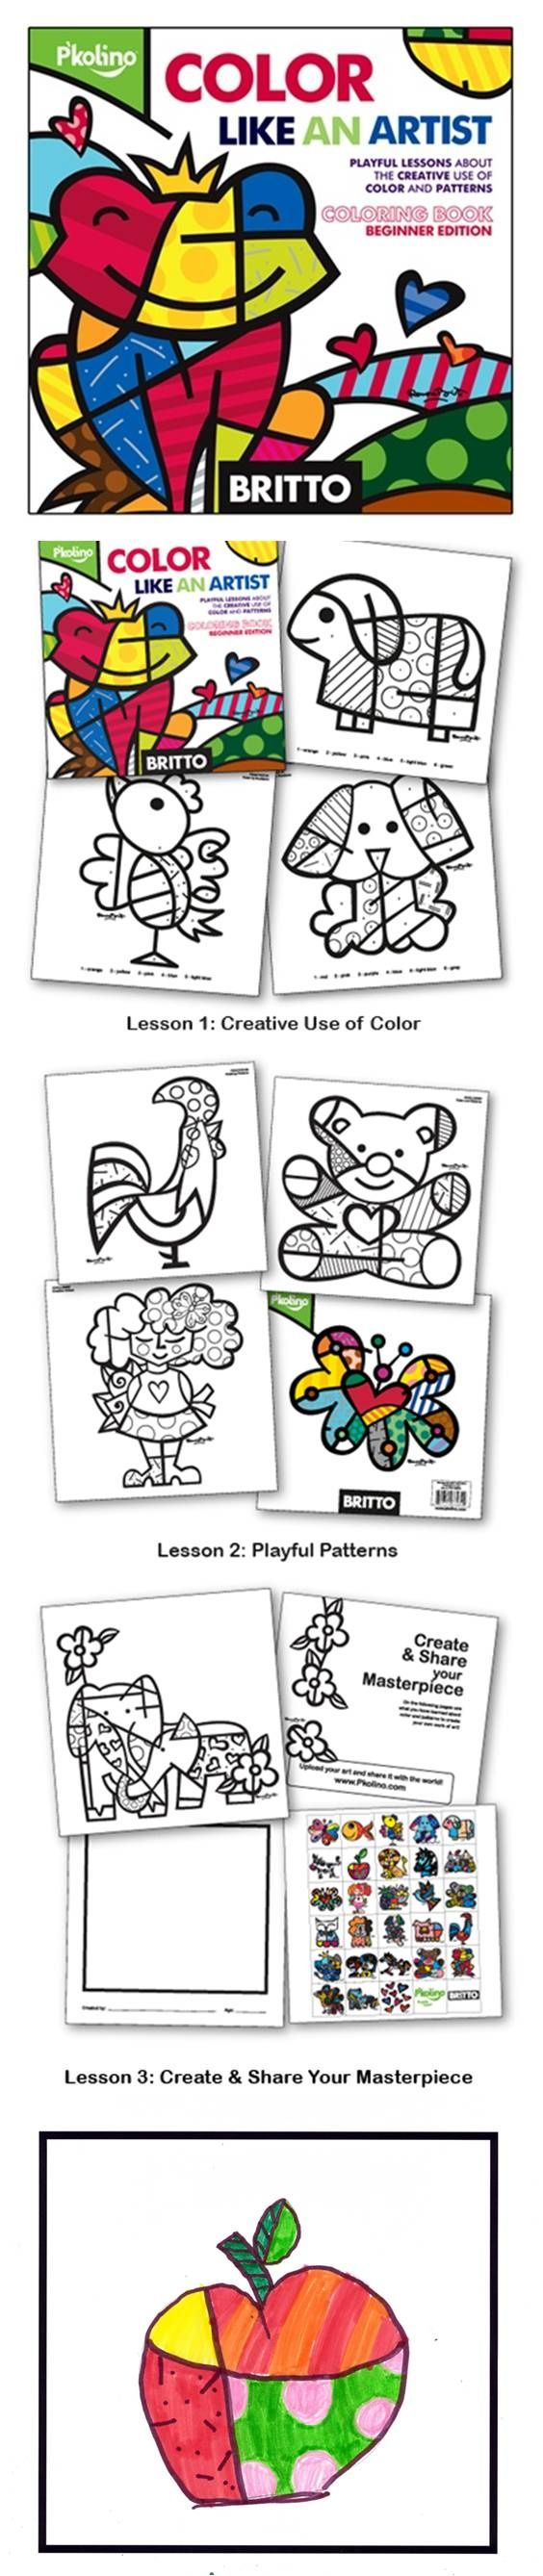 The zoology coloring book - This Playful Coloring Book Teaches Children About Colors Patterns Through The Vibrant Art Instruction Of Pop Artist Romero Britto